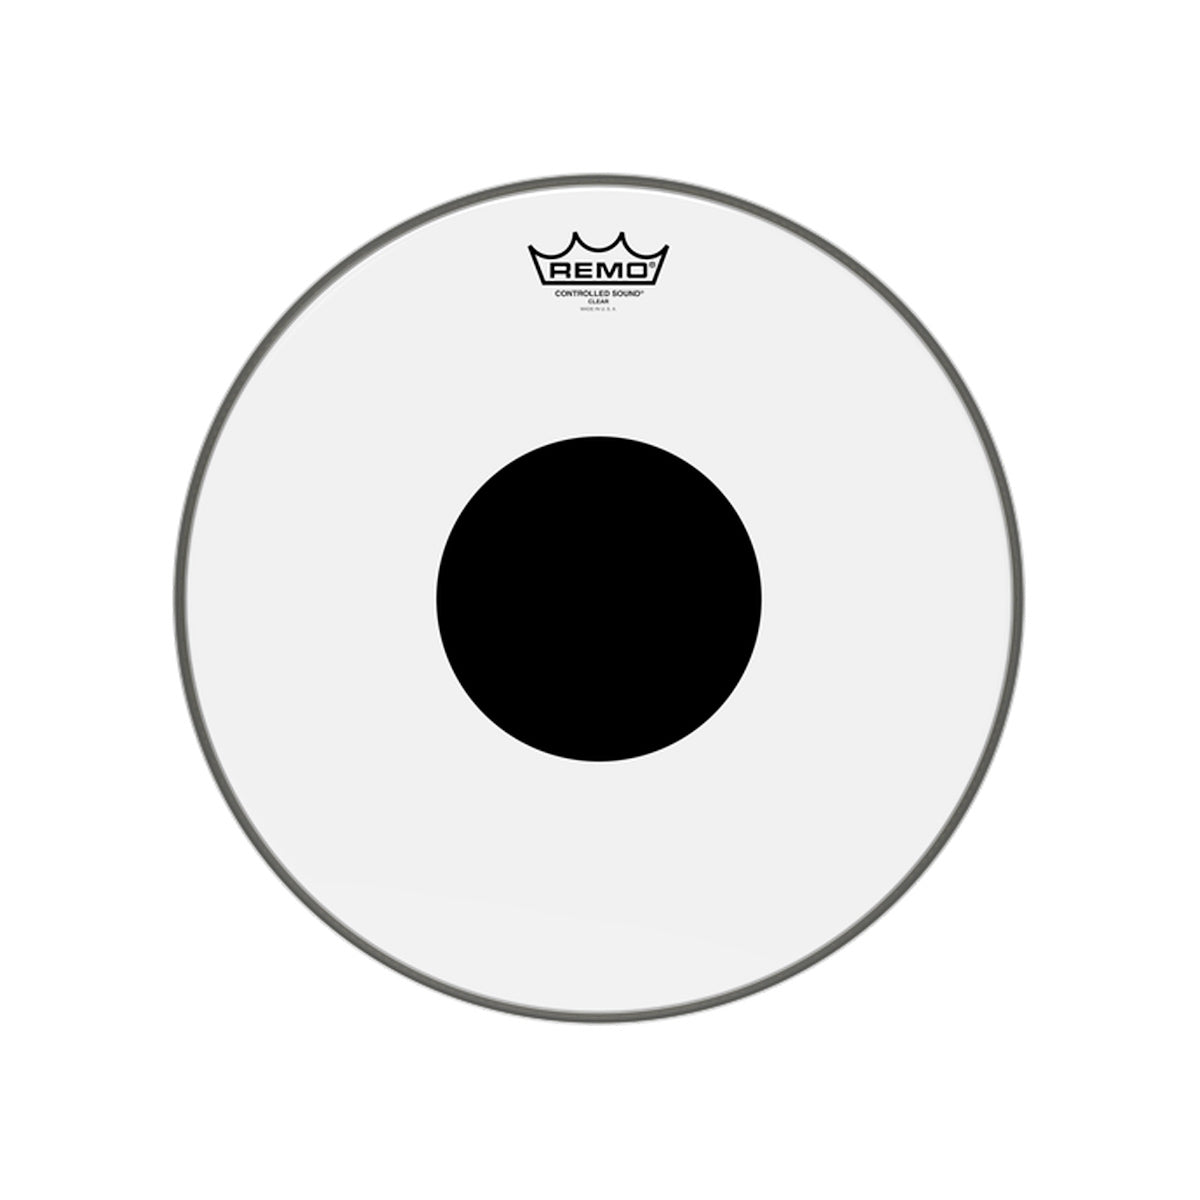 Remo CS-0315-10 Controlled Sound Drum Head Skin 15 inch Clear 15'' w/ Dot